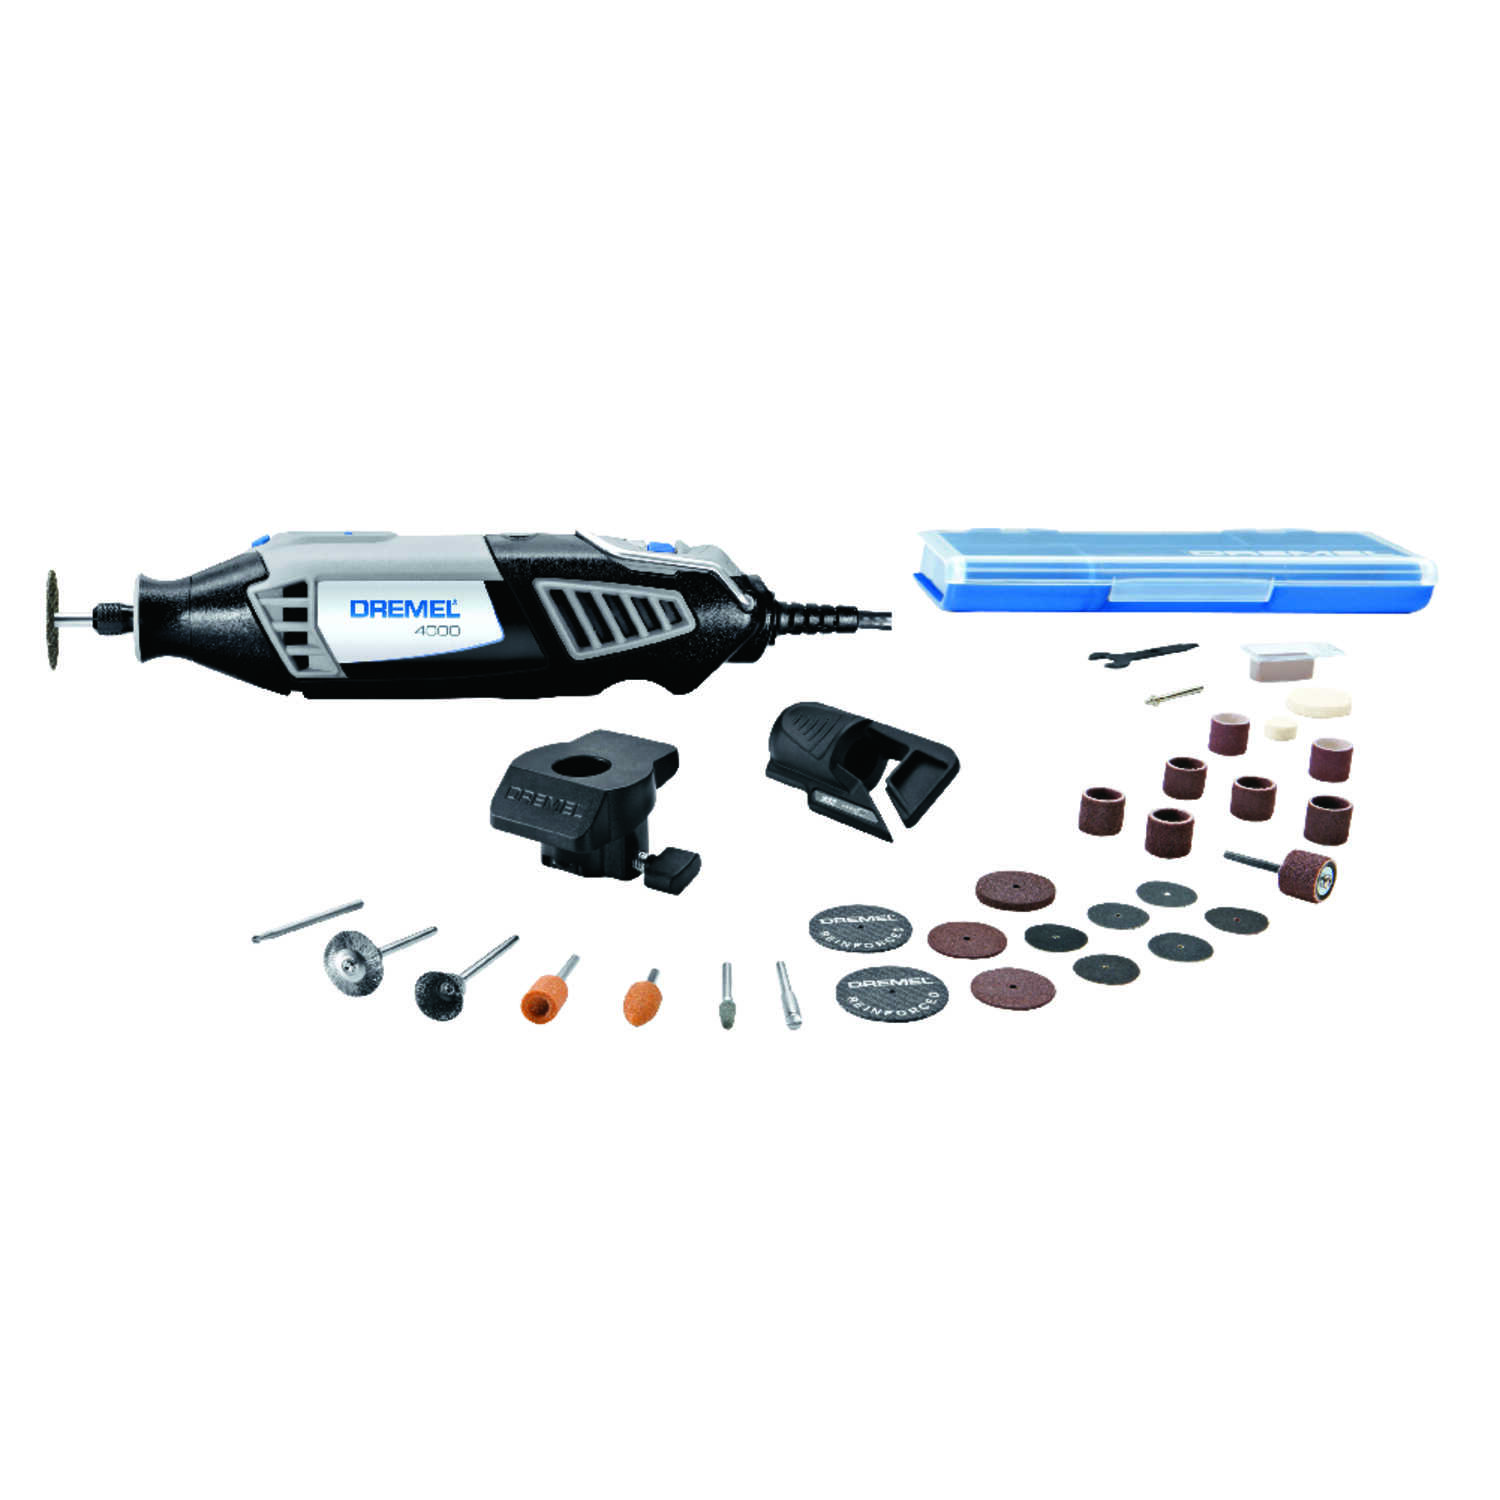 Dremel  4000  1/8 in. Corded  Rotary Tool  Kit 1.6 are 120 volt 35000 rpm 30 pc.